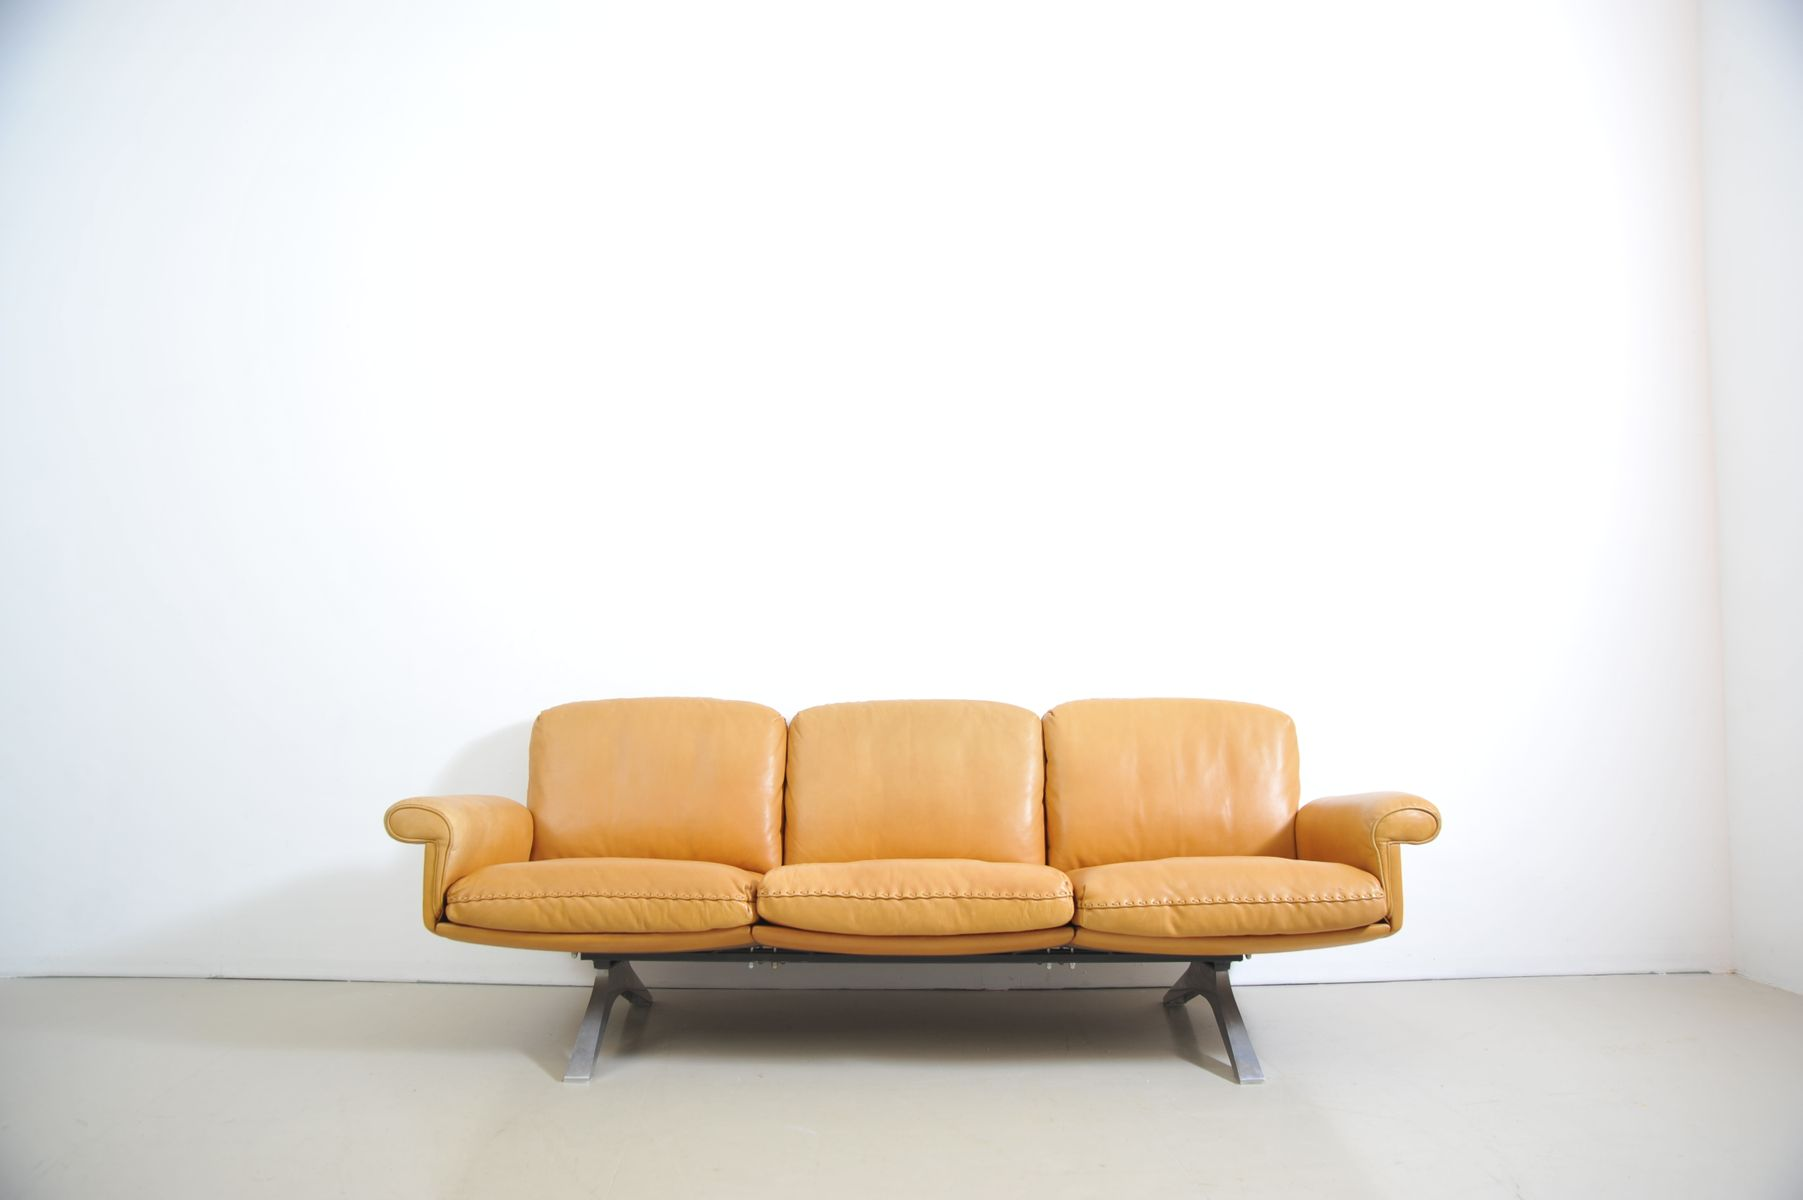 de sede sofa vintage chicago 2018 hours ds31 from for sale at pamono